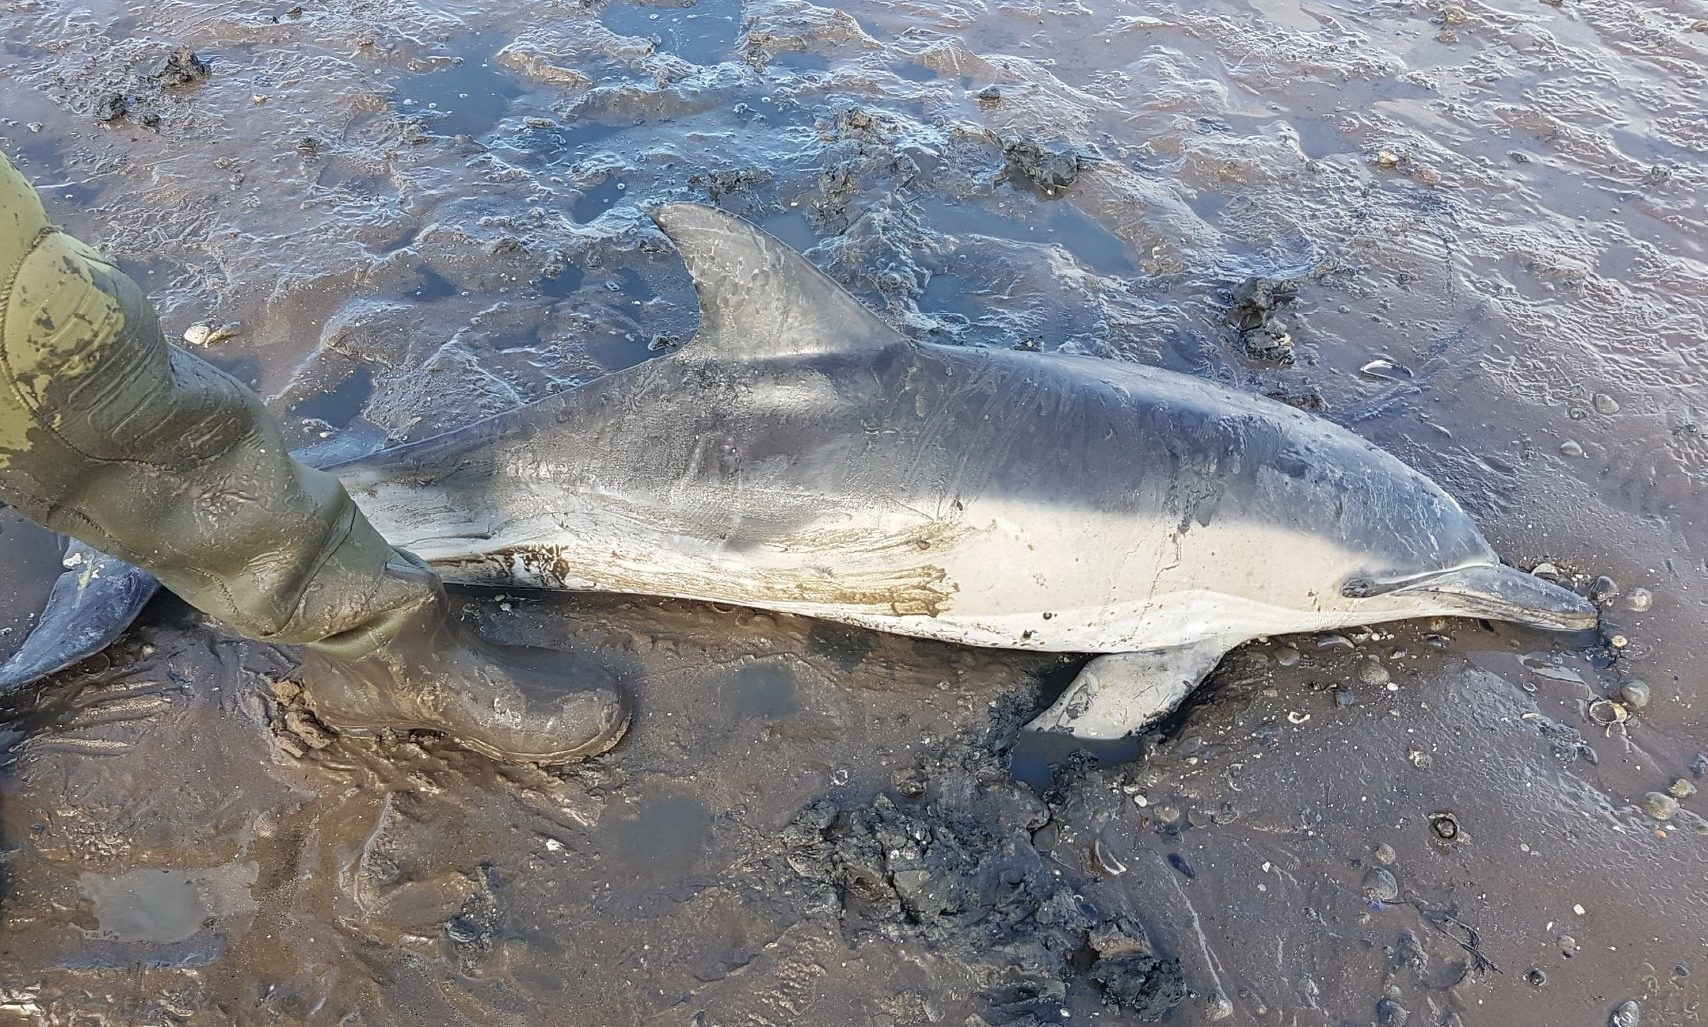 The young dolphin was stretchered back into the sea on a jacket